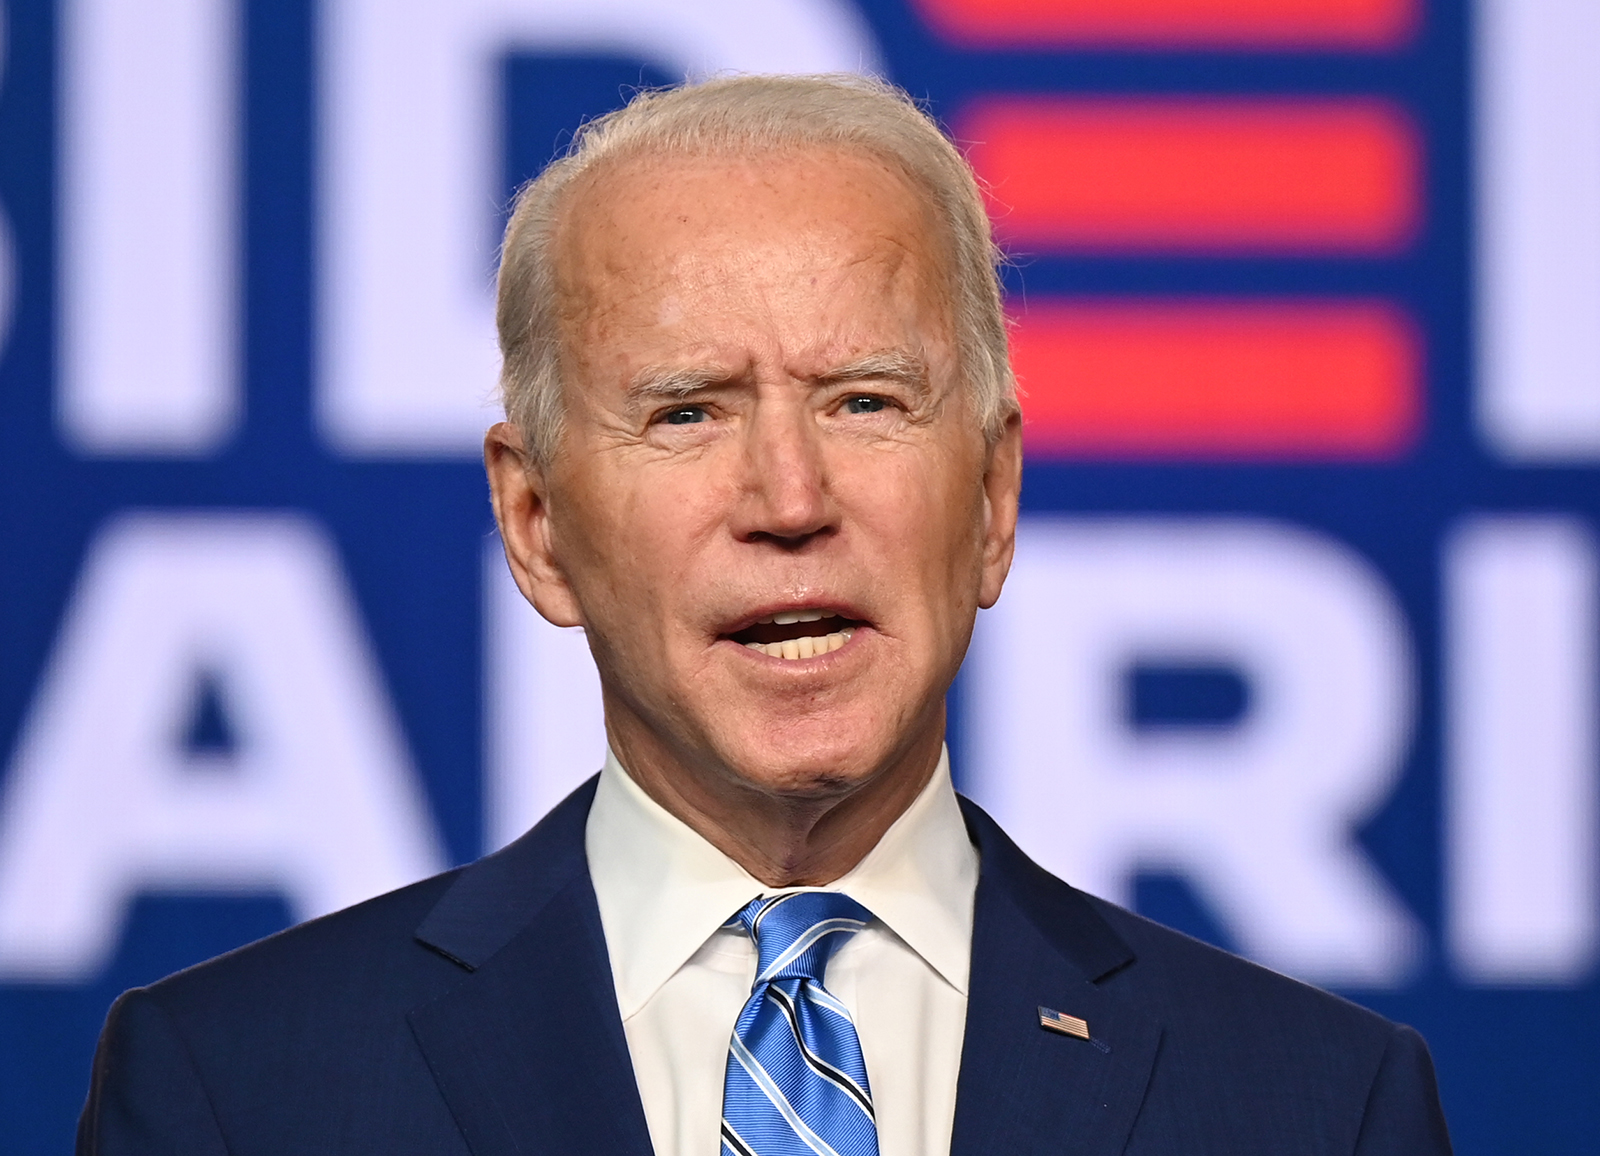 Democratic Presidential candidate Joe Biden speaks at the Chase Center in Wilmington, Delaware on November 4.